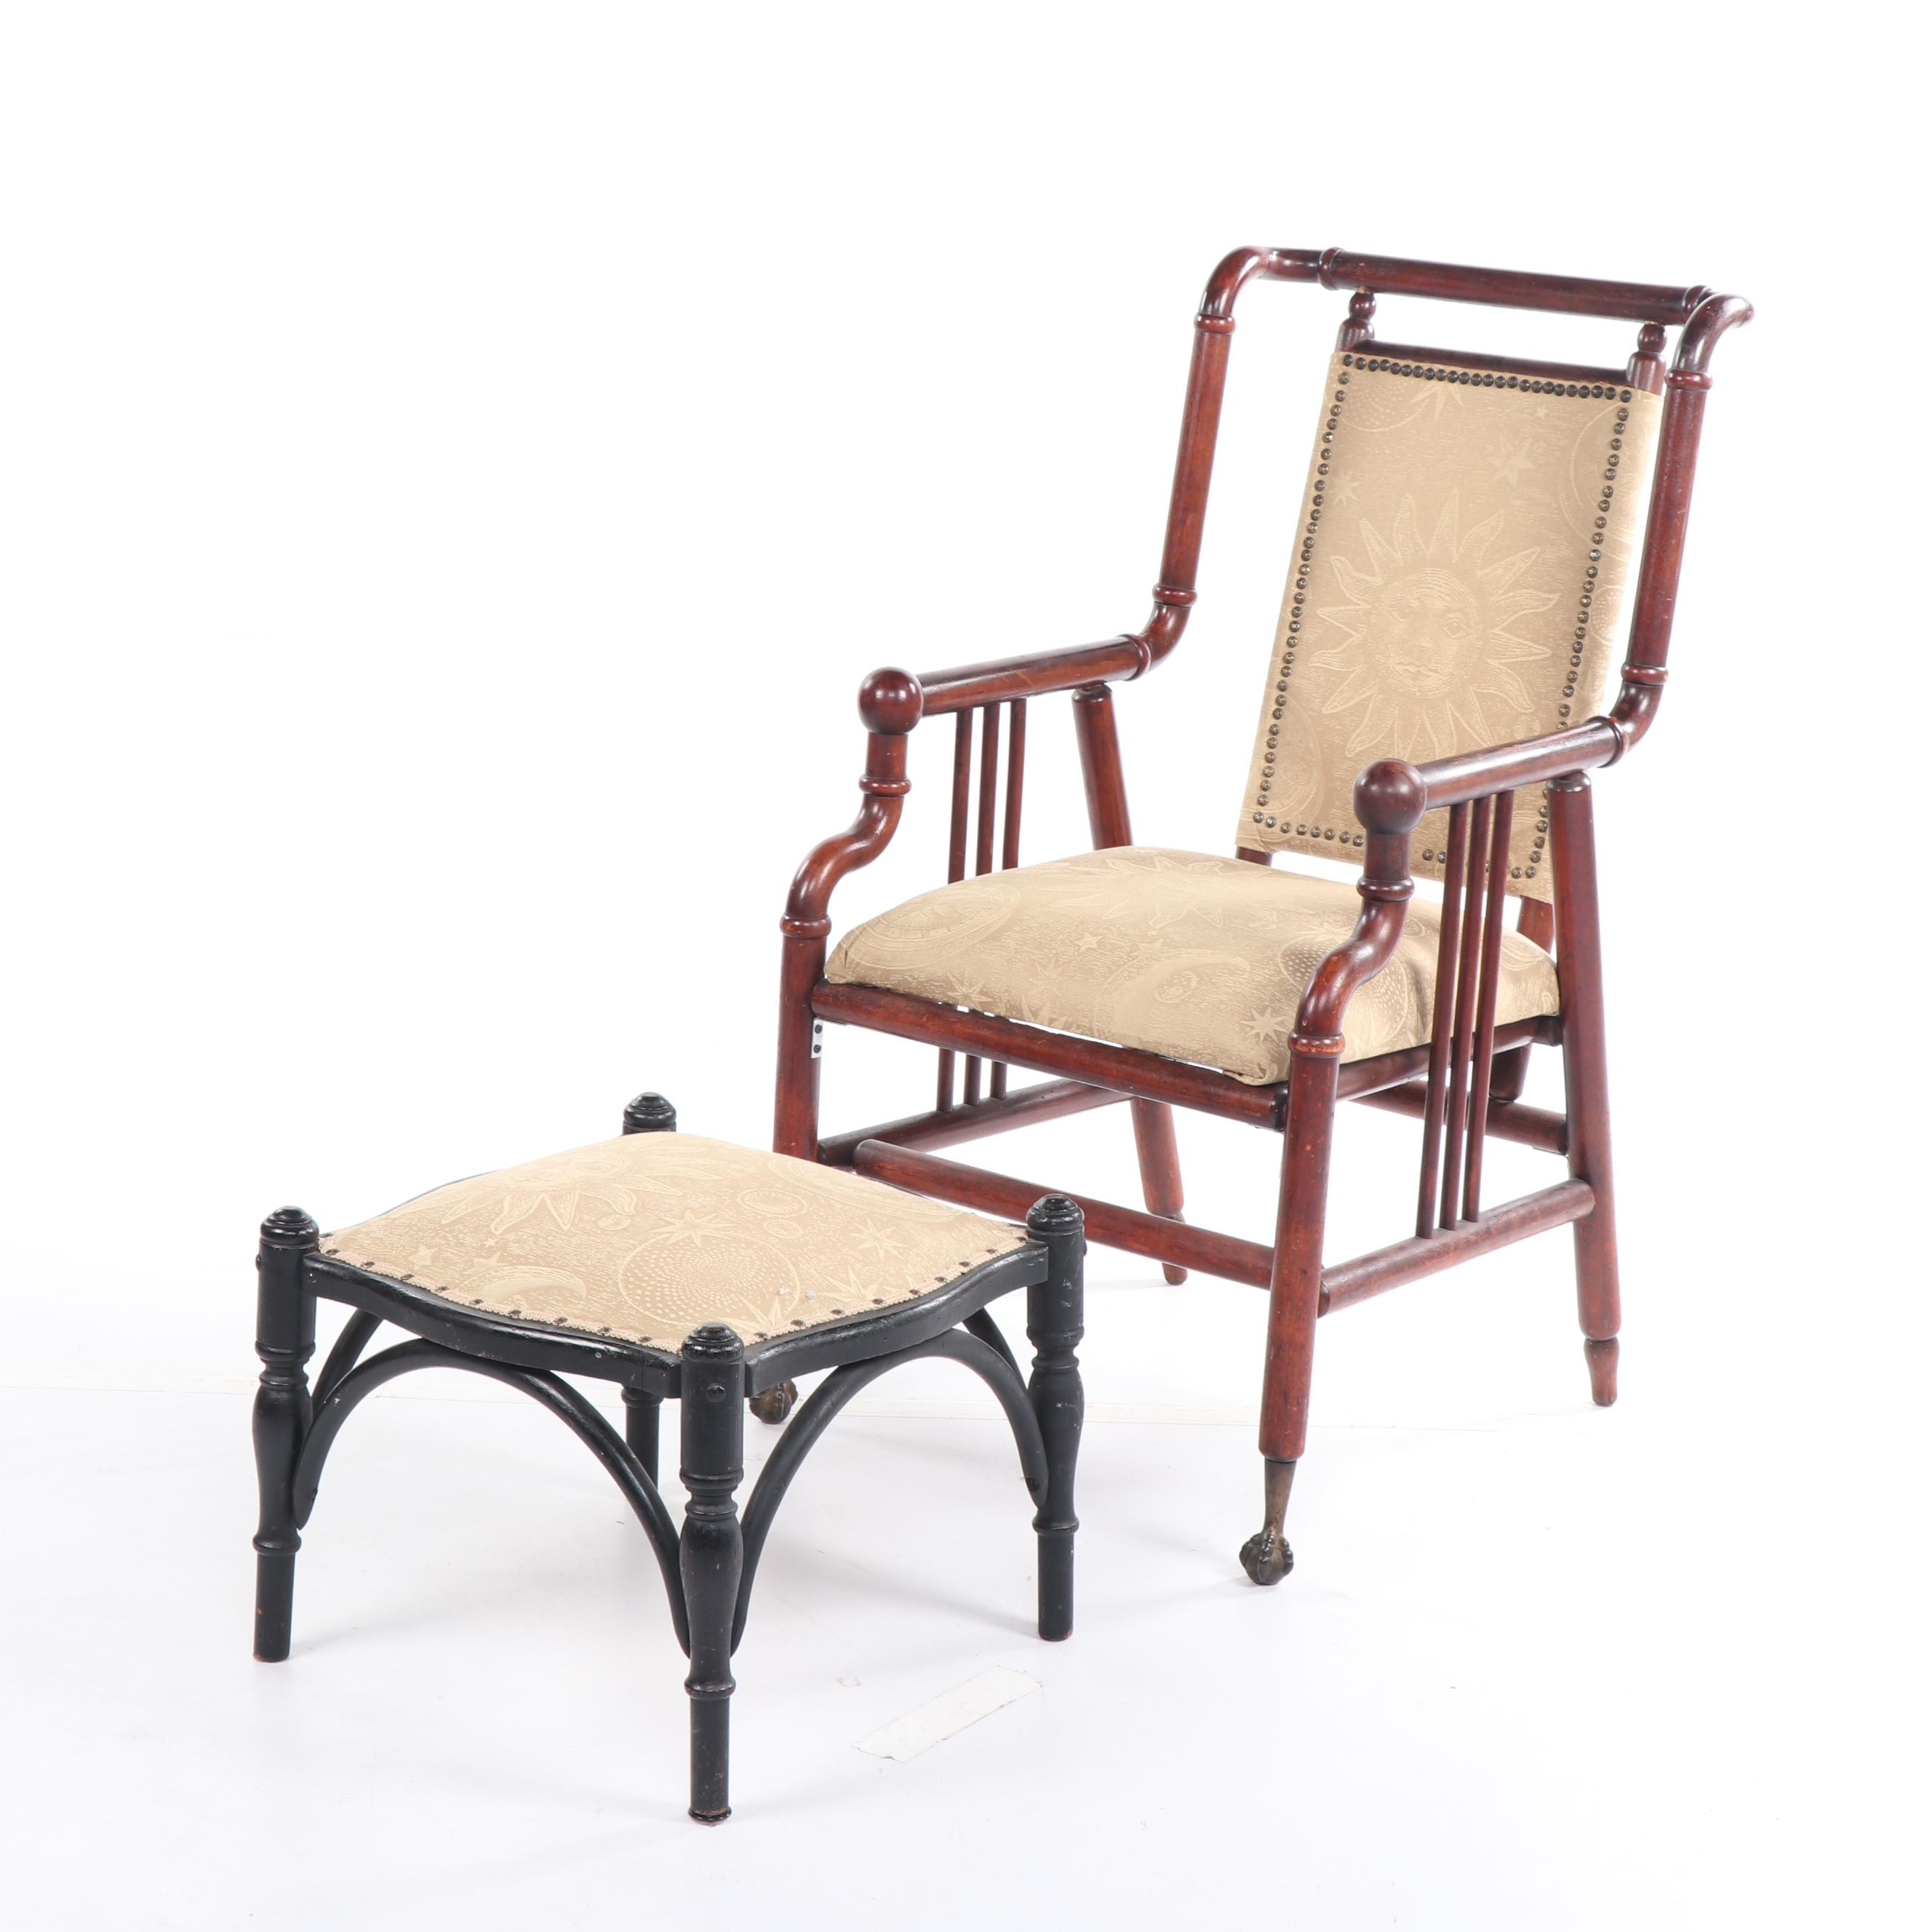 Campaign Style Wood Frame Upholstered Armchair and Ottoman, Early 20th Century